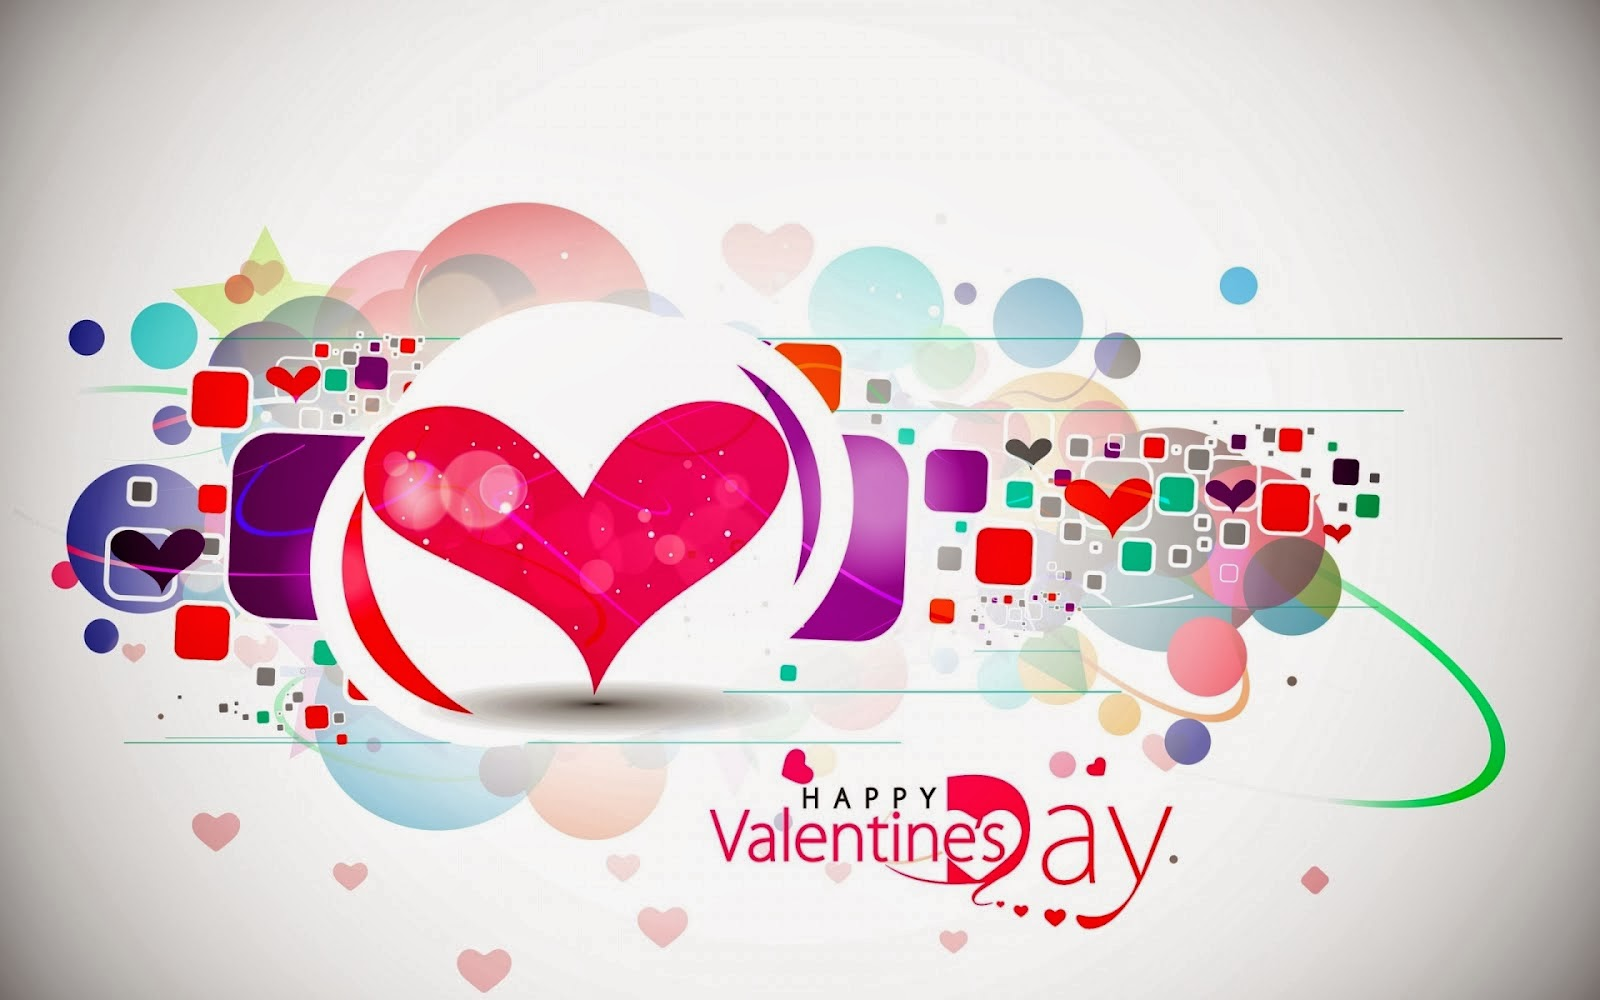 Must see   Wallpaper Horse Valentines Day - valentines+day+wallpapers+(7)  Snapshot_964926.jpg